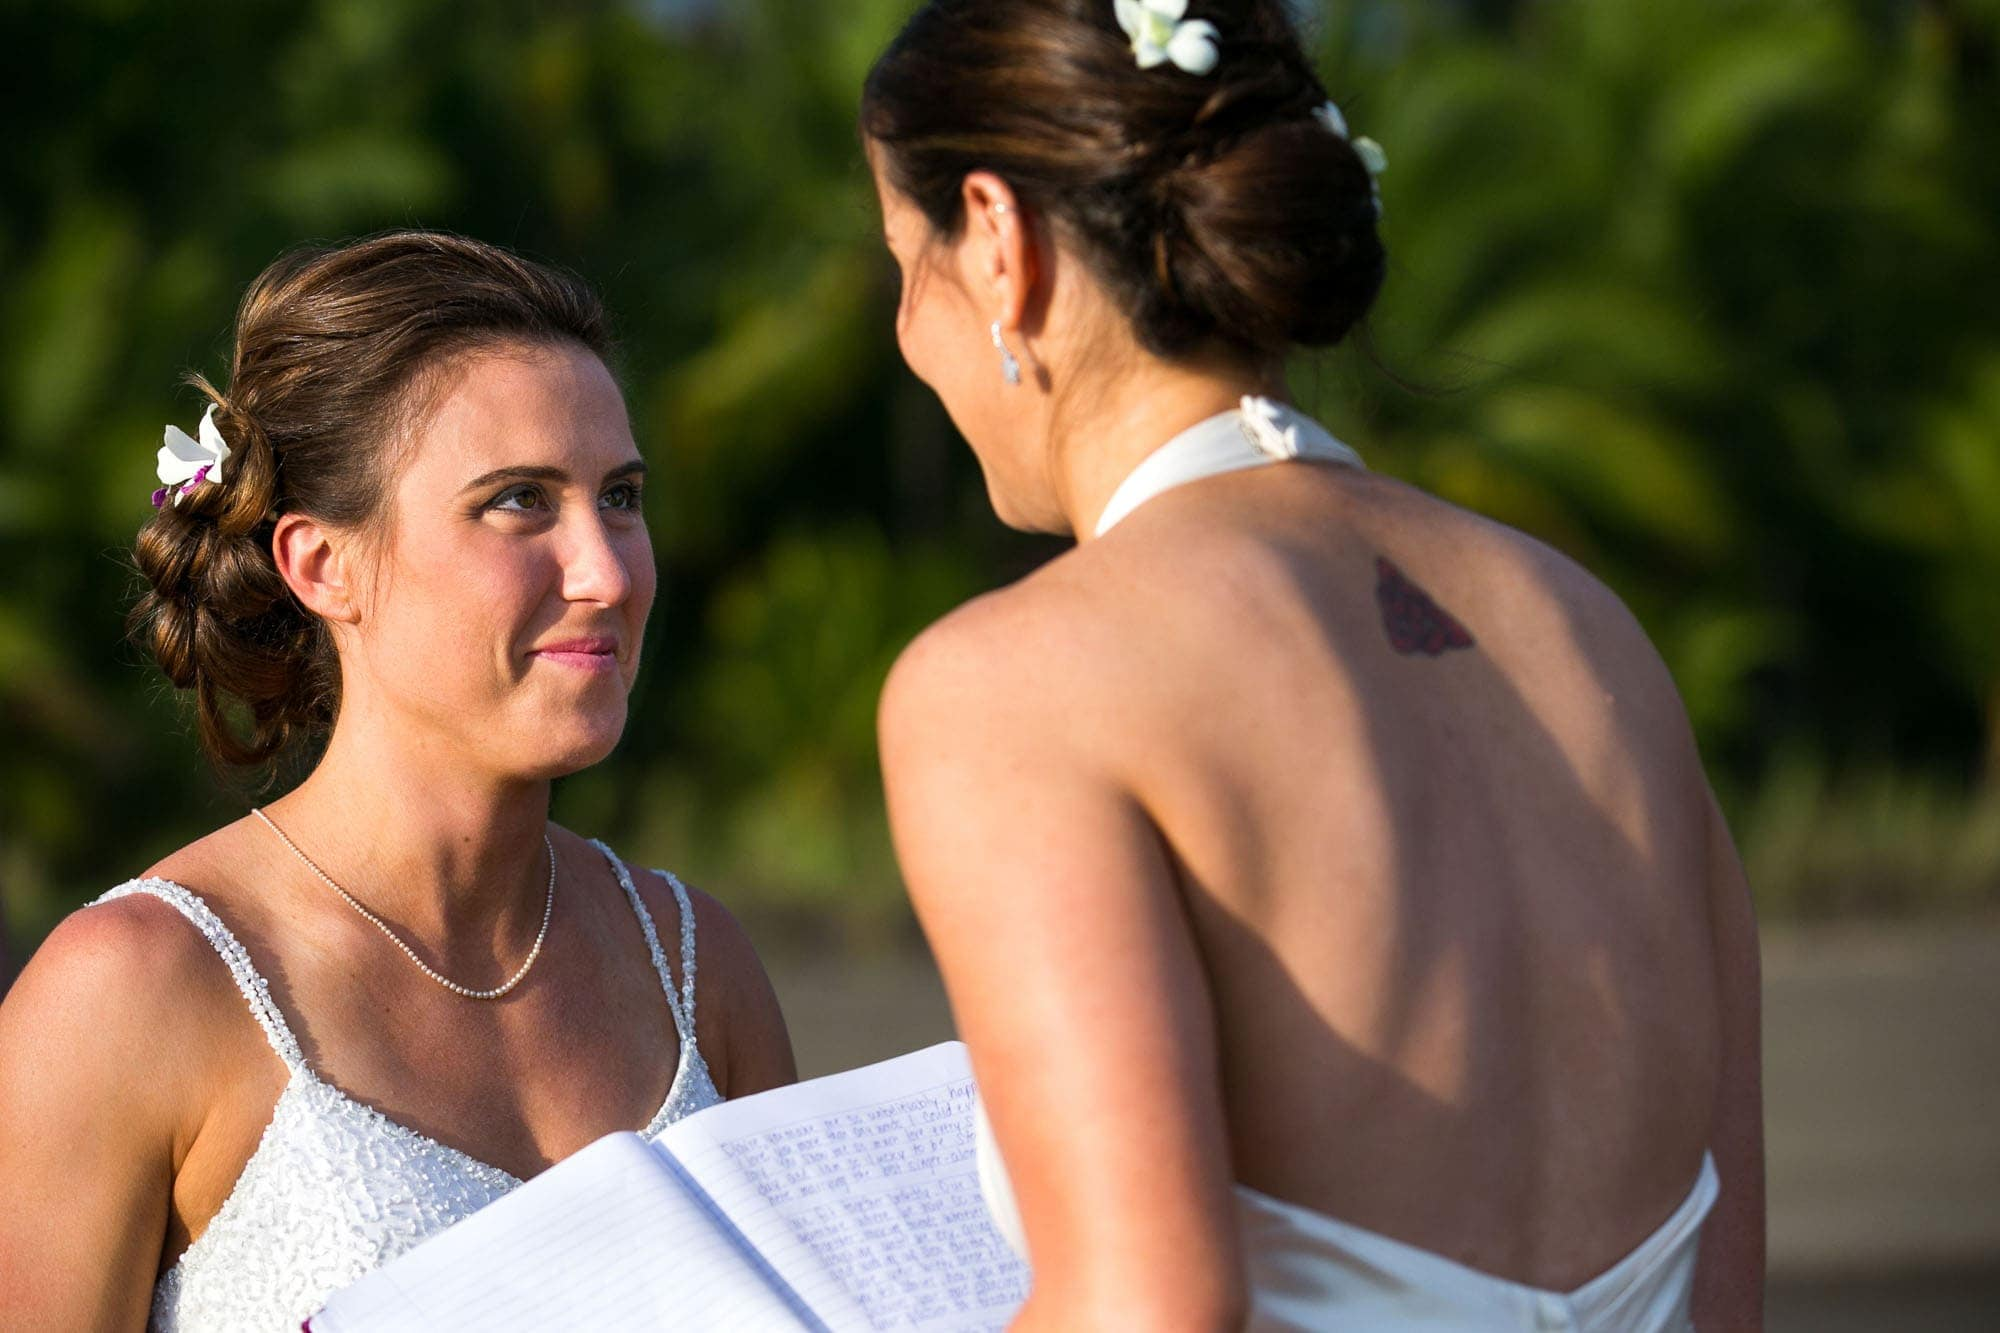 lesbian wedding ceremony in costa rica